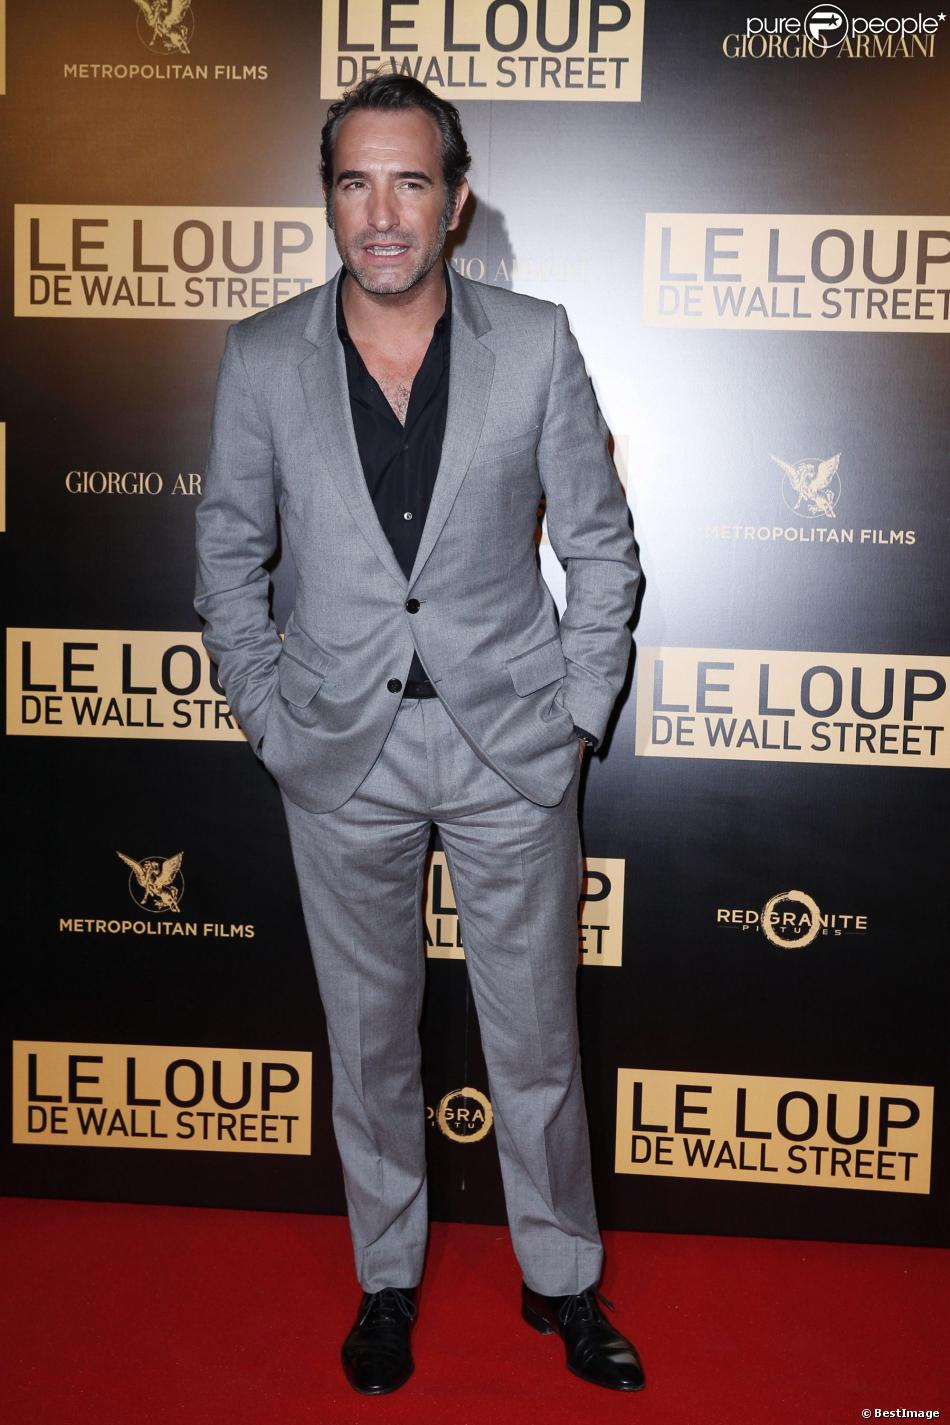 950 x for Jean loup dujardin